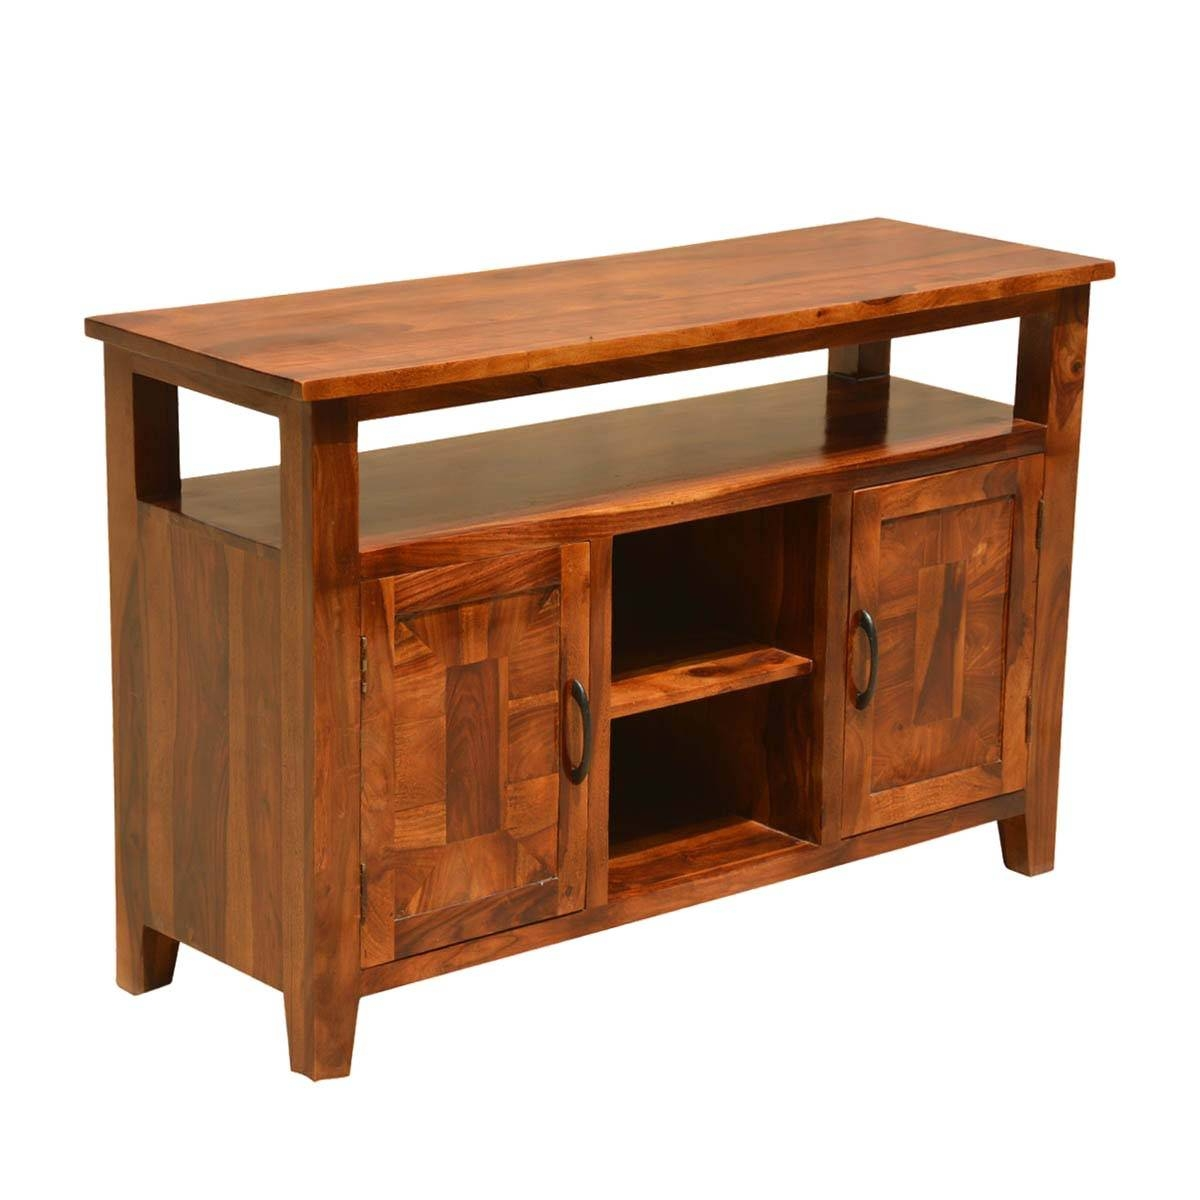 Nevada Traditional Solid Wood Buffet Rustic Sideboard Server throughout Real Wood Sideboards (Image 6 of 30)